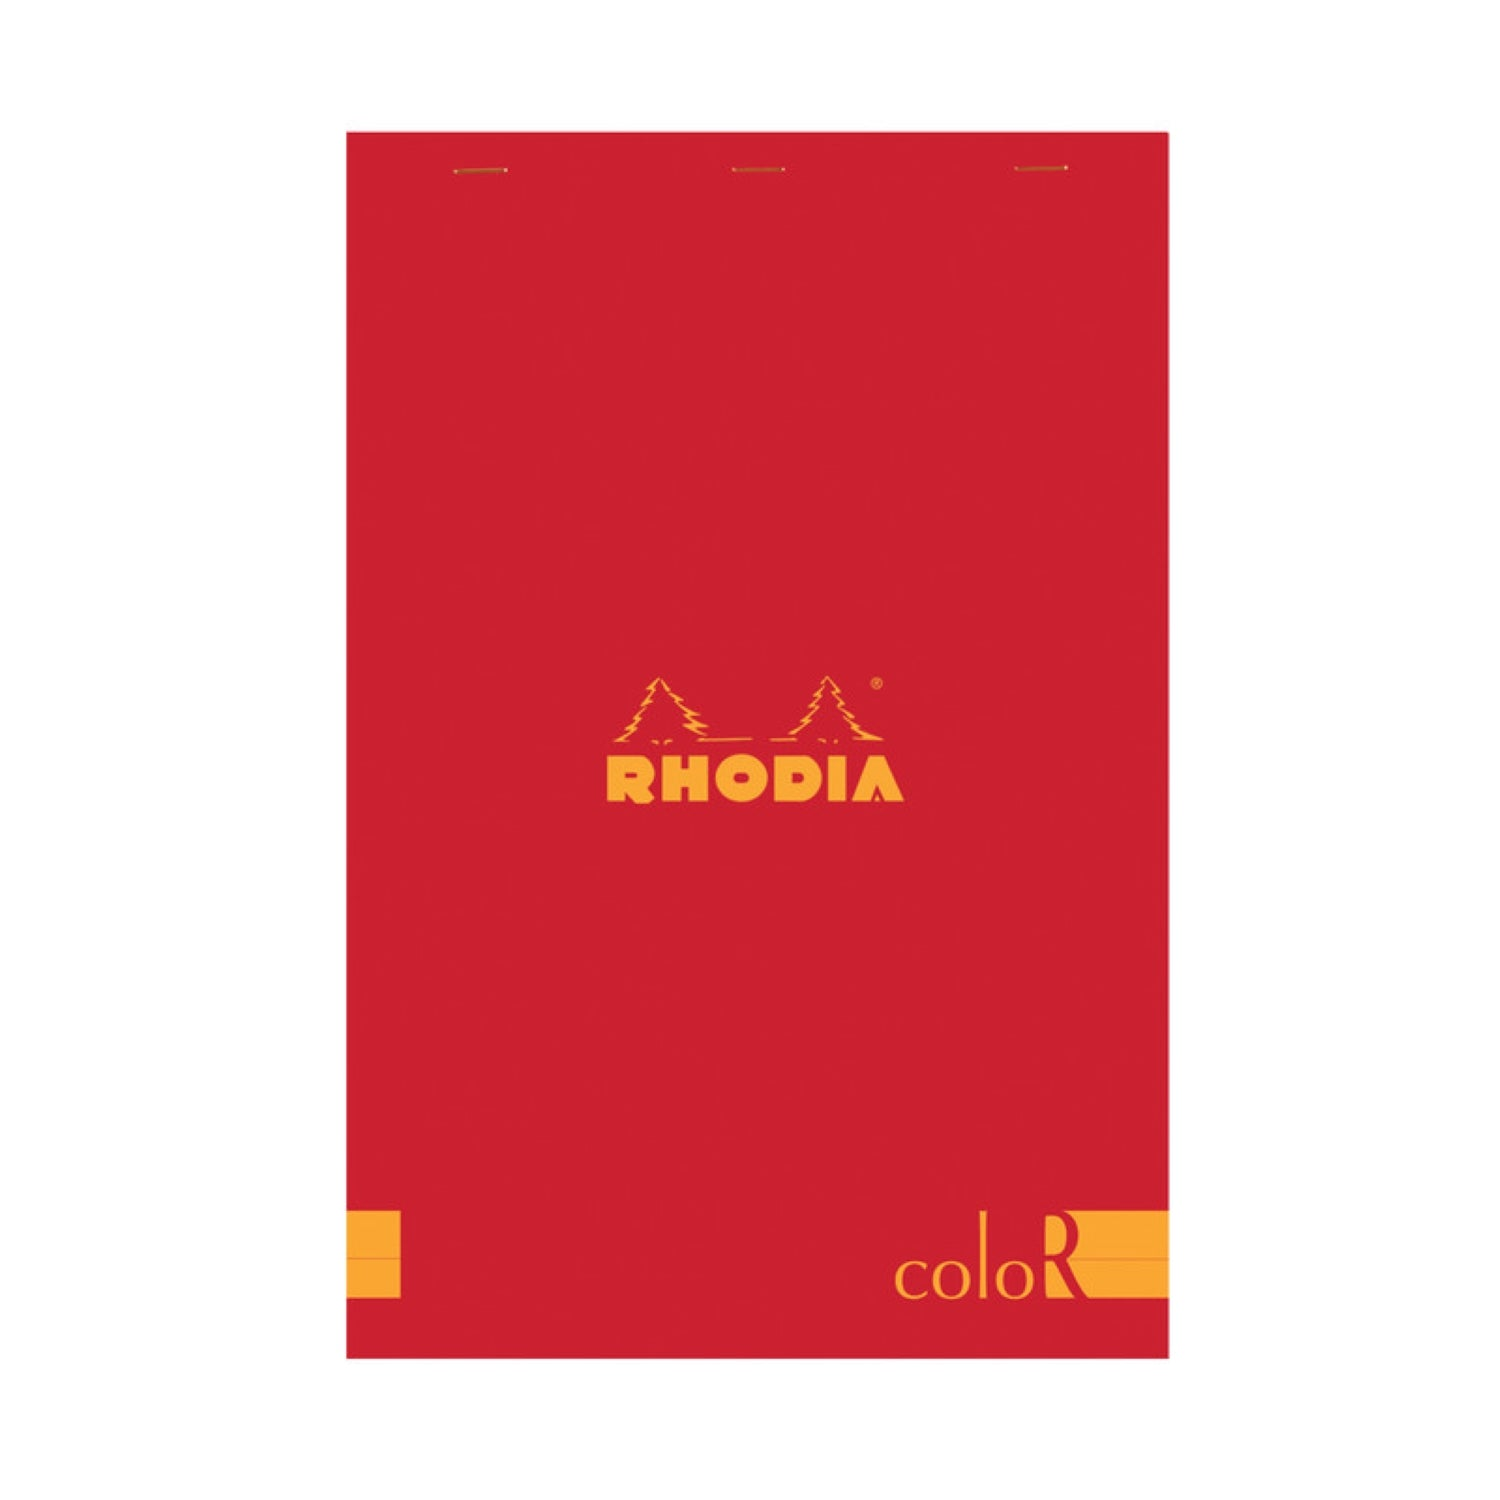 RHODIA Pad 18 R PREMIUM PAD Poppy Red Cover LINED